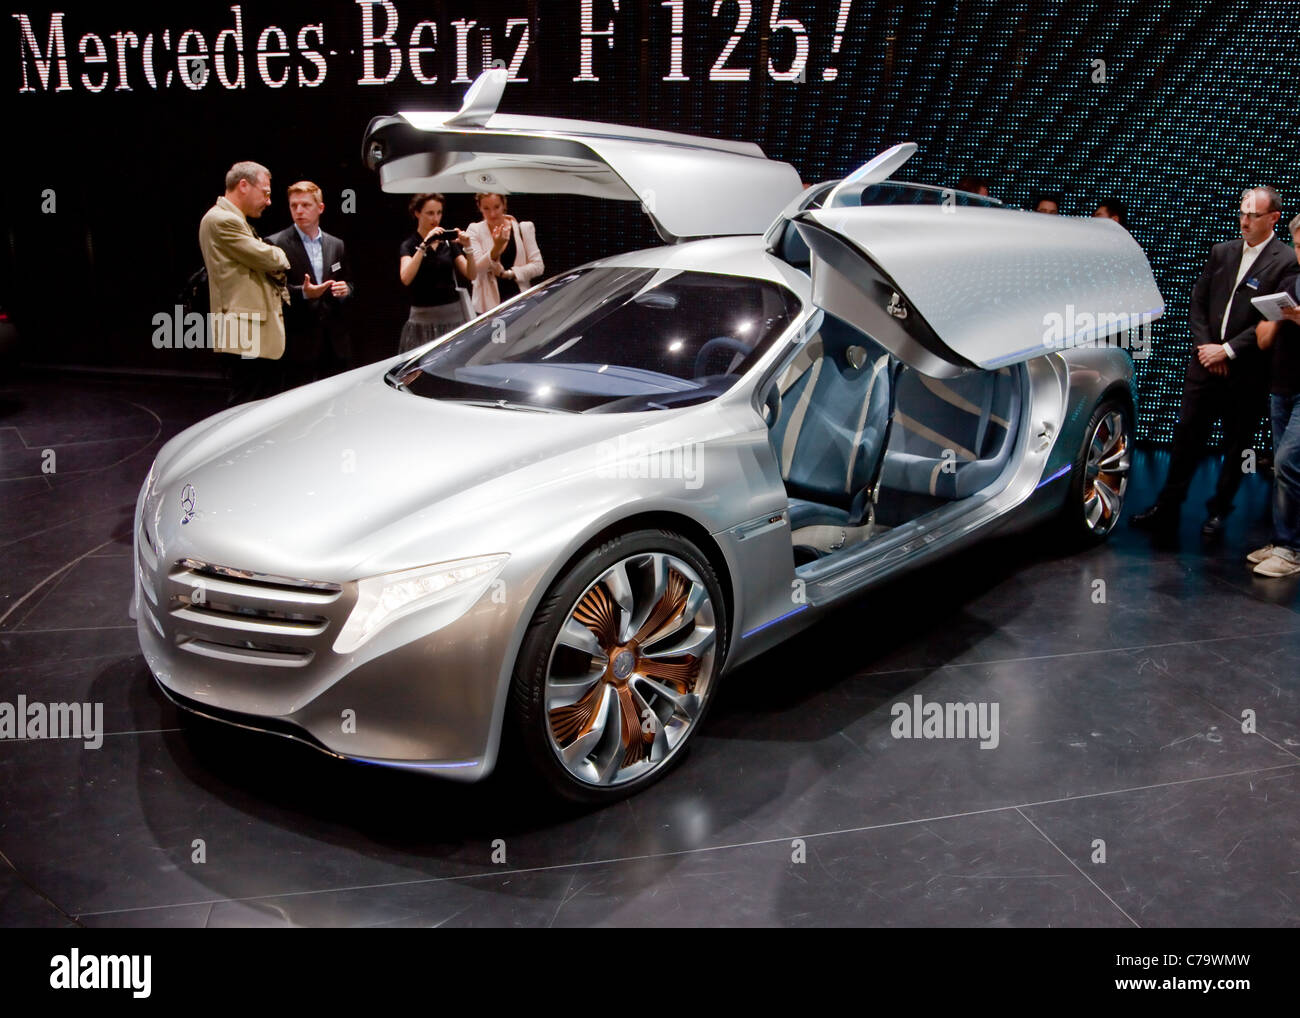 New mercedes benz concept car f125 on the iaa 2011 for New mercedes benz concept